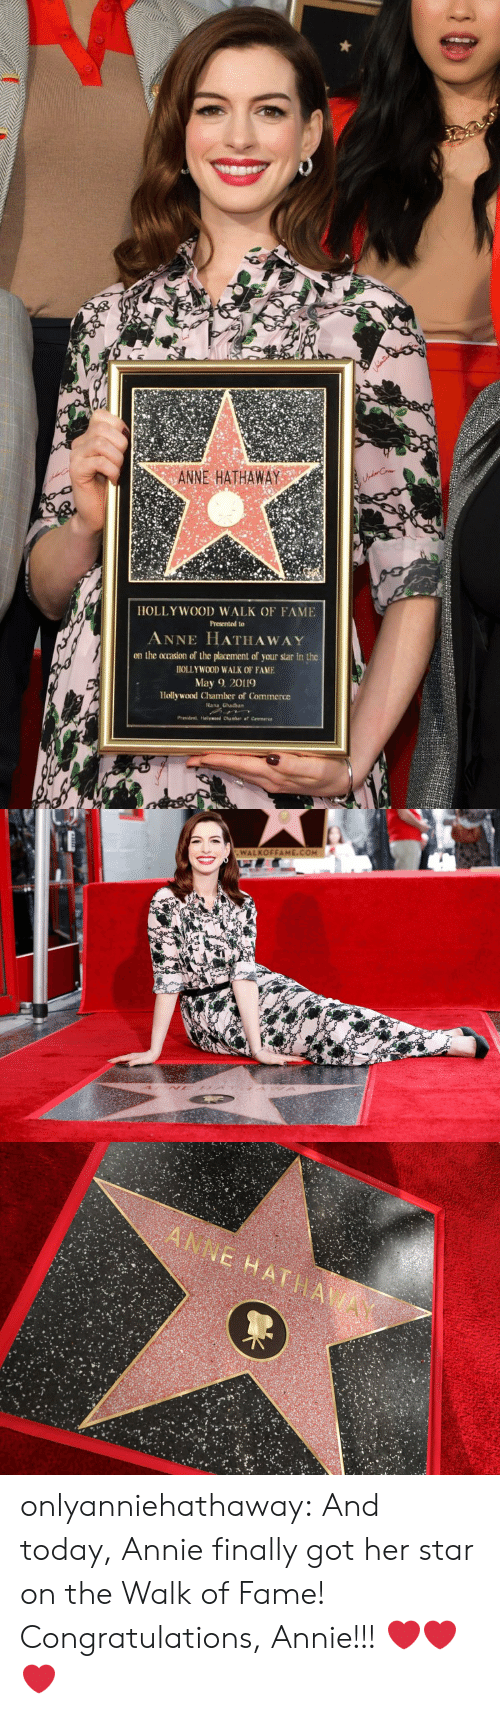 The Walk: ANNE HATHAWAY  HOLLY WOOD WALK OF FAME  Presented to  ANNE HATHAWAY  on the ocrasion of the placement of your star in the  HOLLYWOOD WALK OF FAME  May 2019  Hollywood Chamber of Commerce  ana Ghadban   WALKOFFAME.COM onlyanniehathaway:  And today, Annie finally got her star on the Walk of Fame! Congratulations, Annie!!!  ❤️❤️❤️